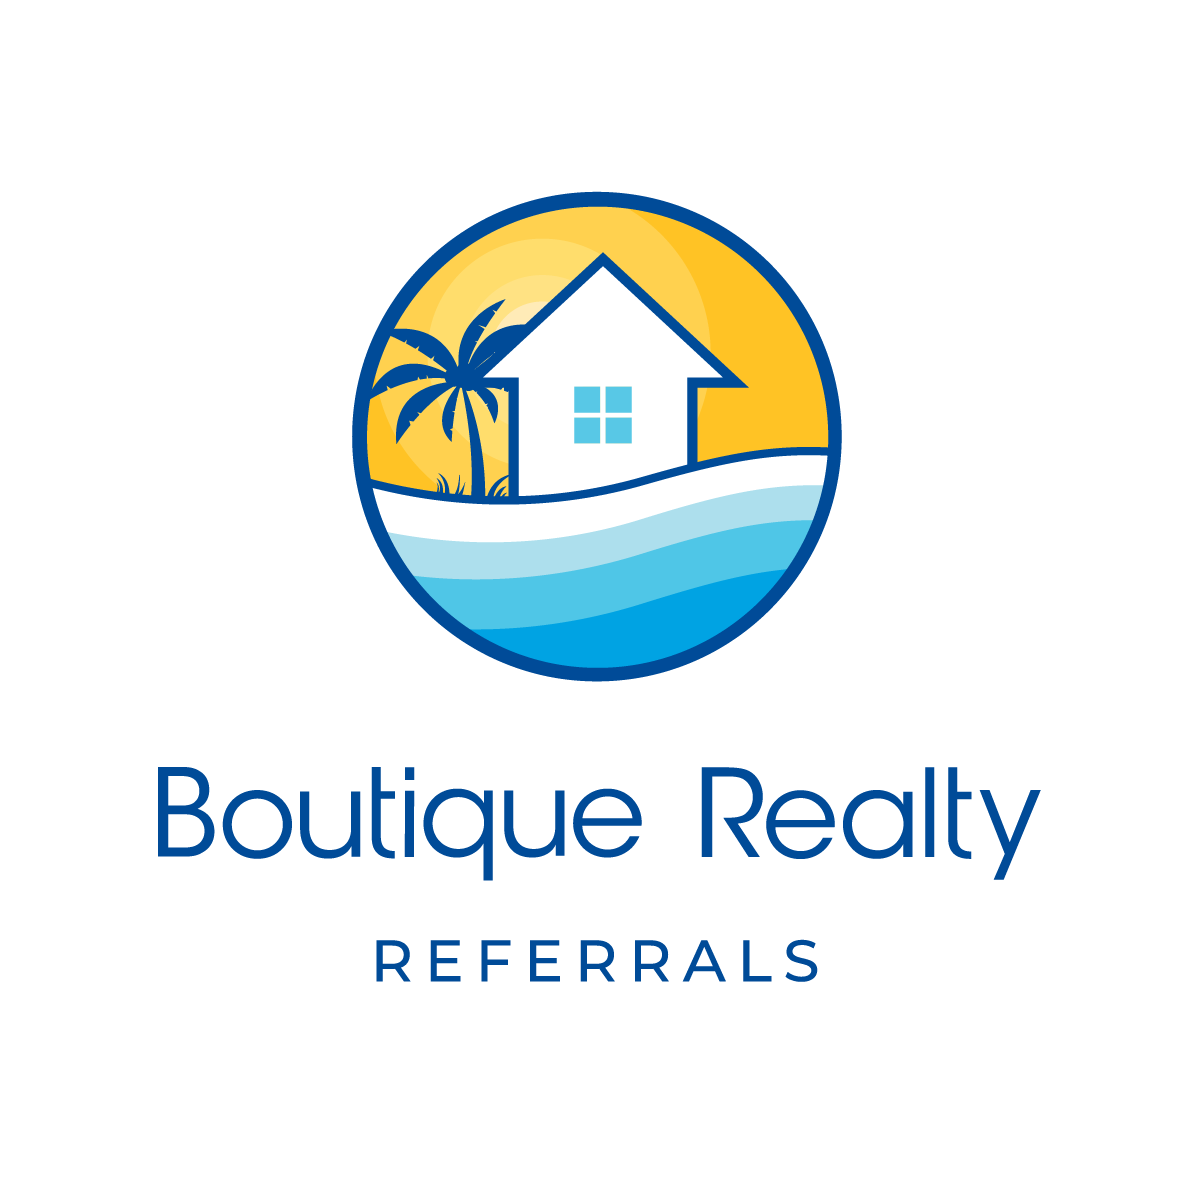 Boutique Realty Referrals